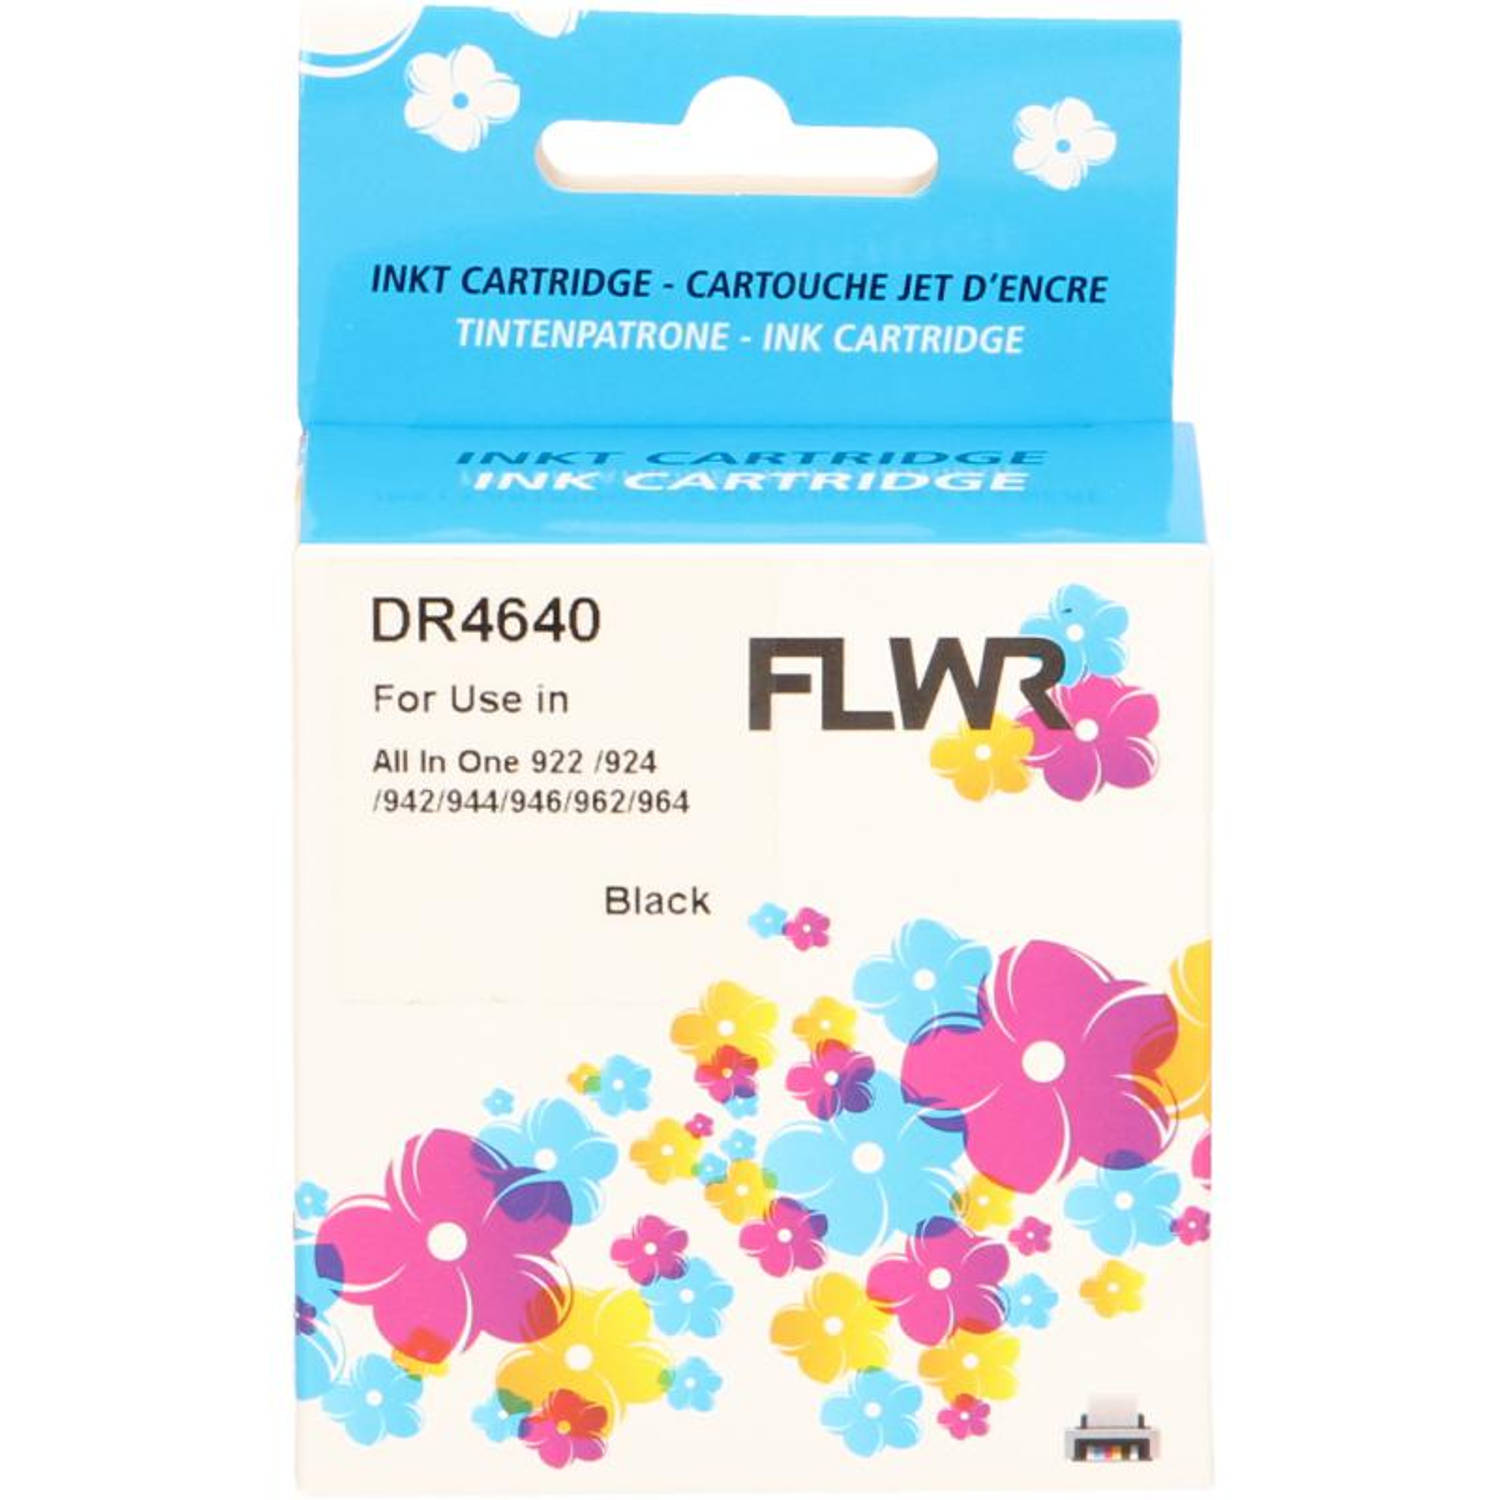 FLWR Dell 922 zwart Cartridge